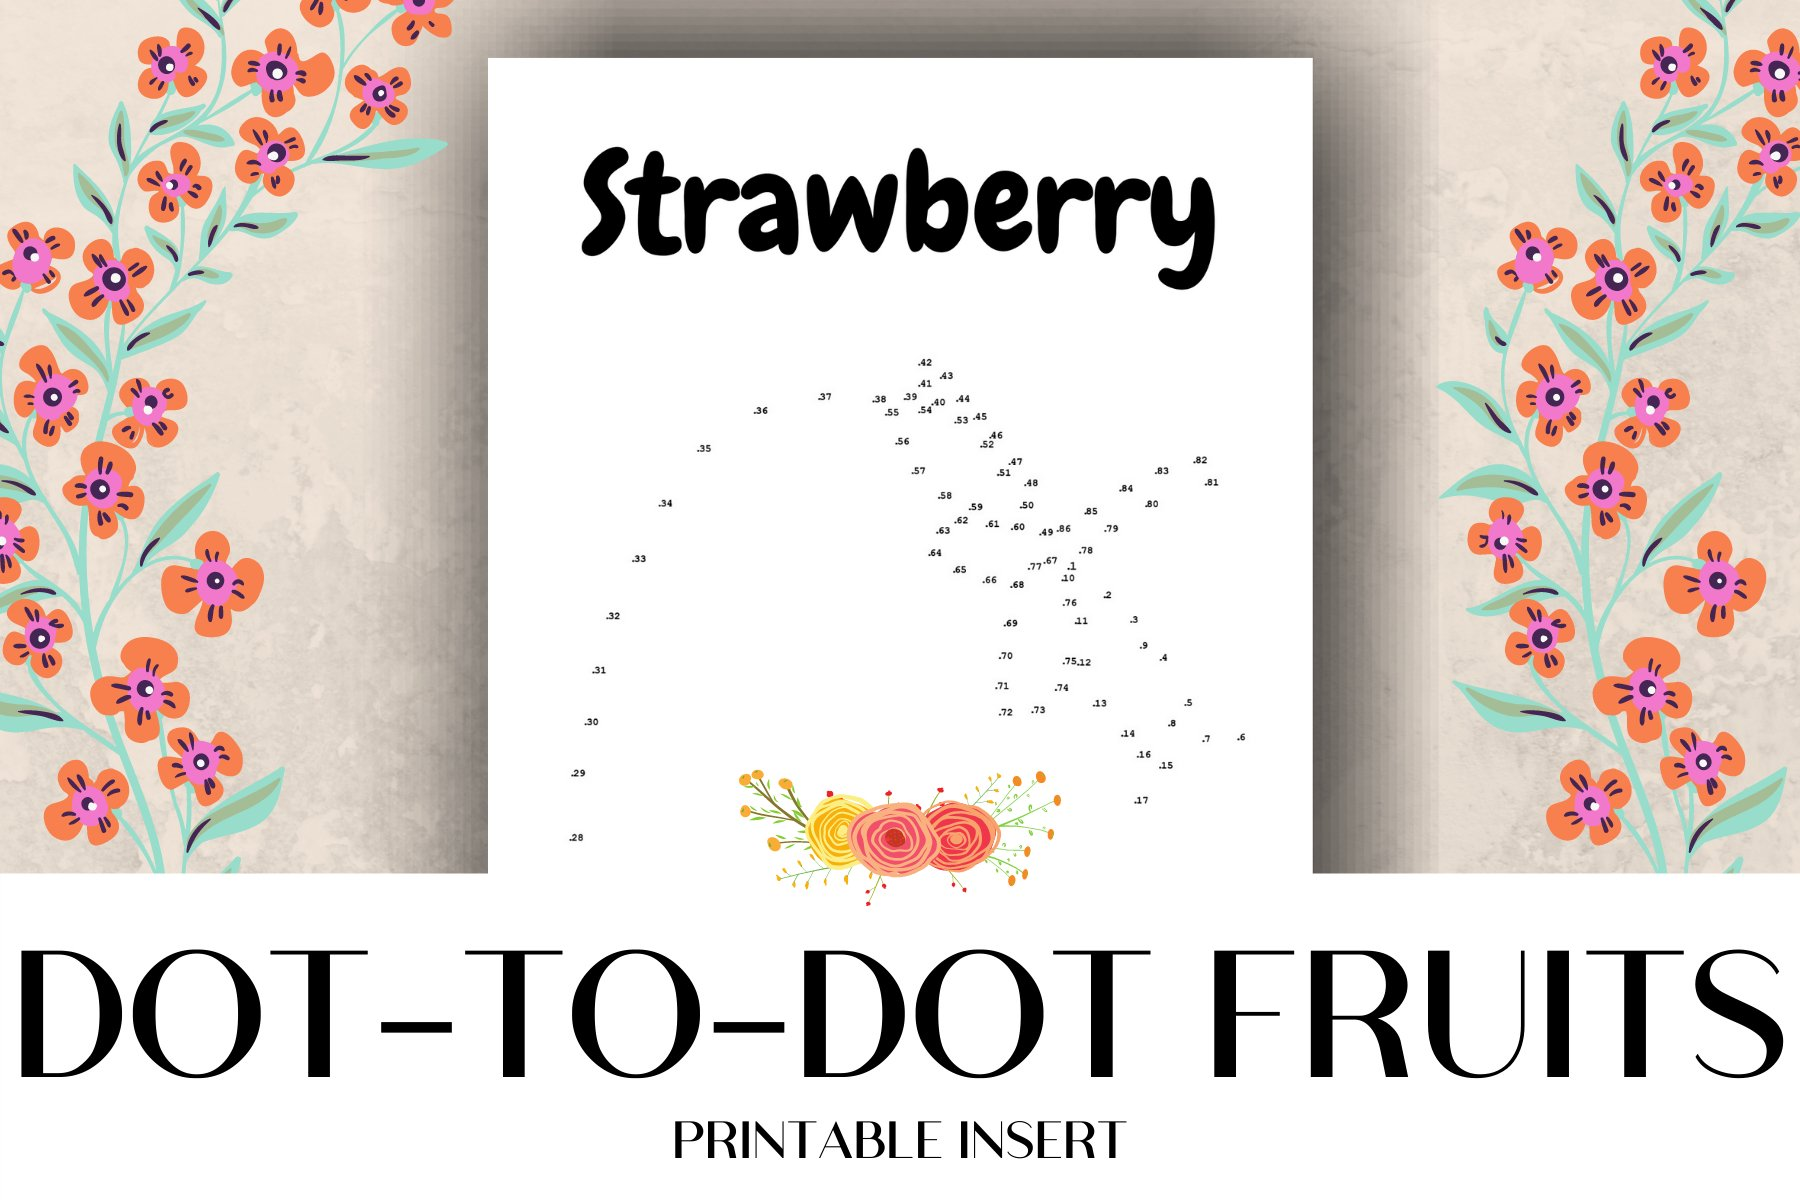 Dot-to-Dot Fruits Printable Activity Pages example image 1